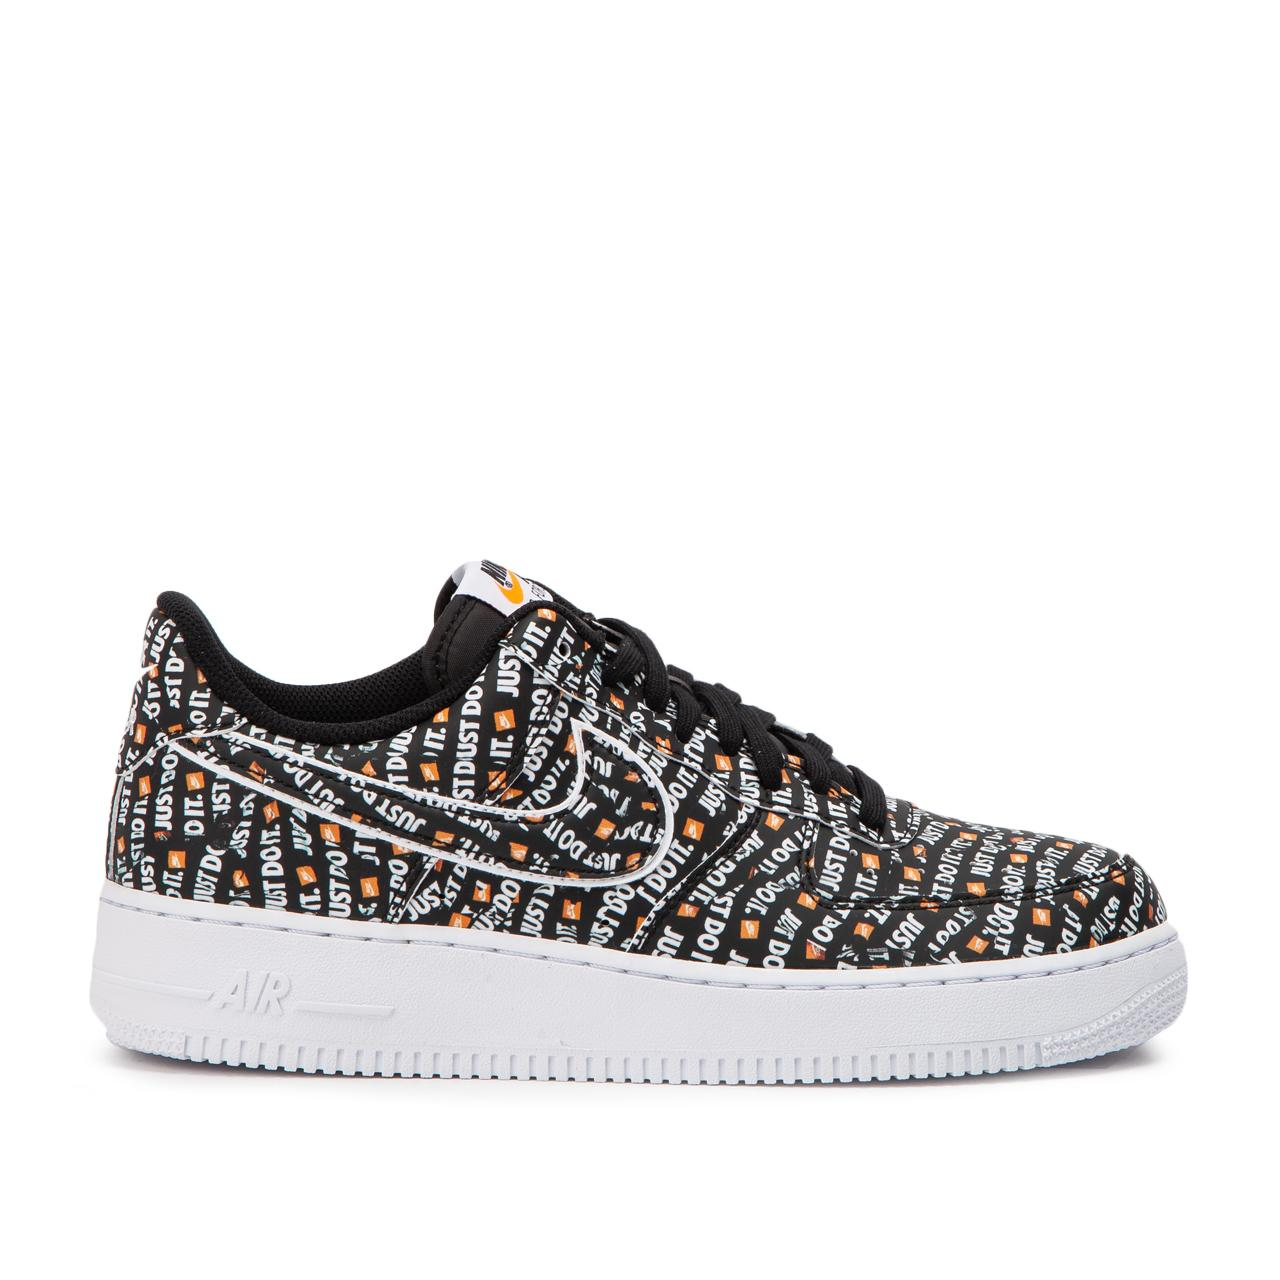 57f191c10c2d Nike Nike Air Force 1  07 Lv8 Jdi in Black for Men - Save 55% - Lyst